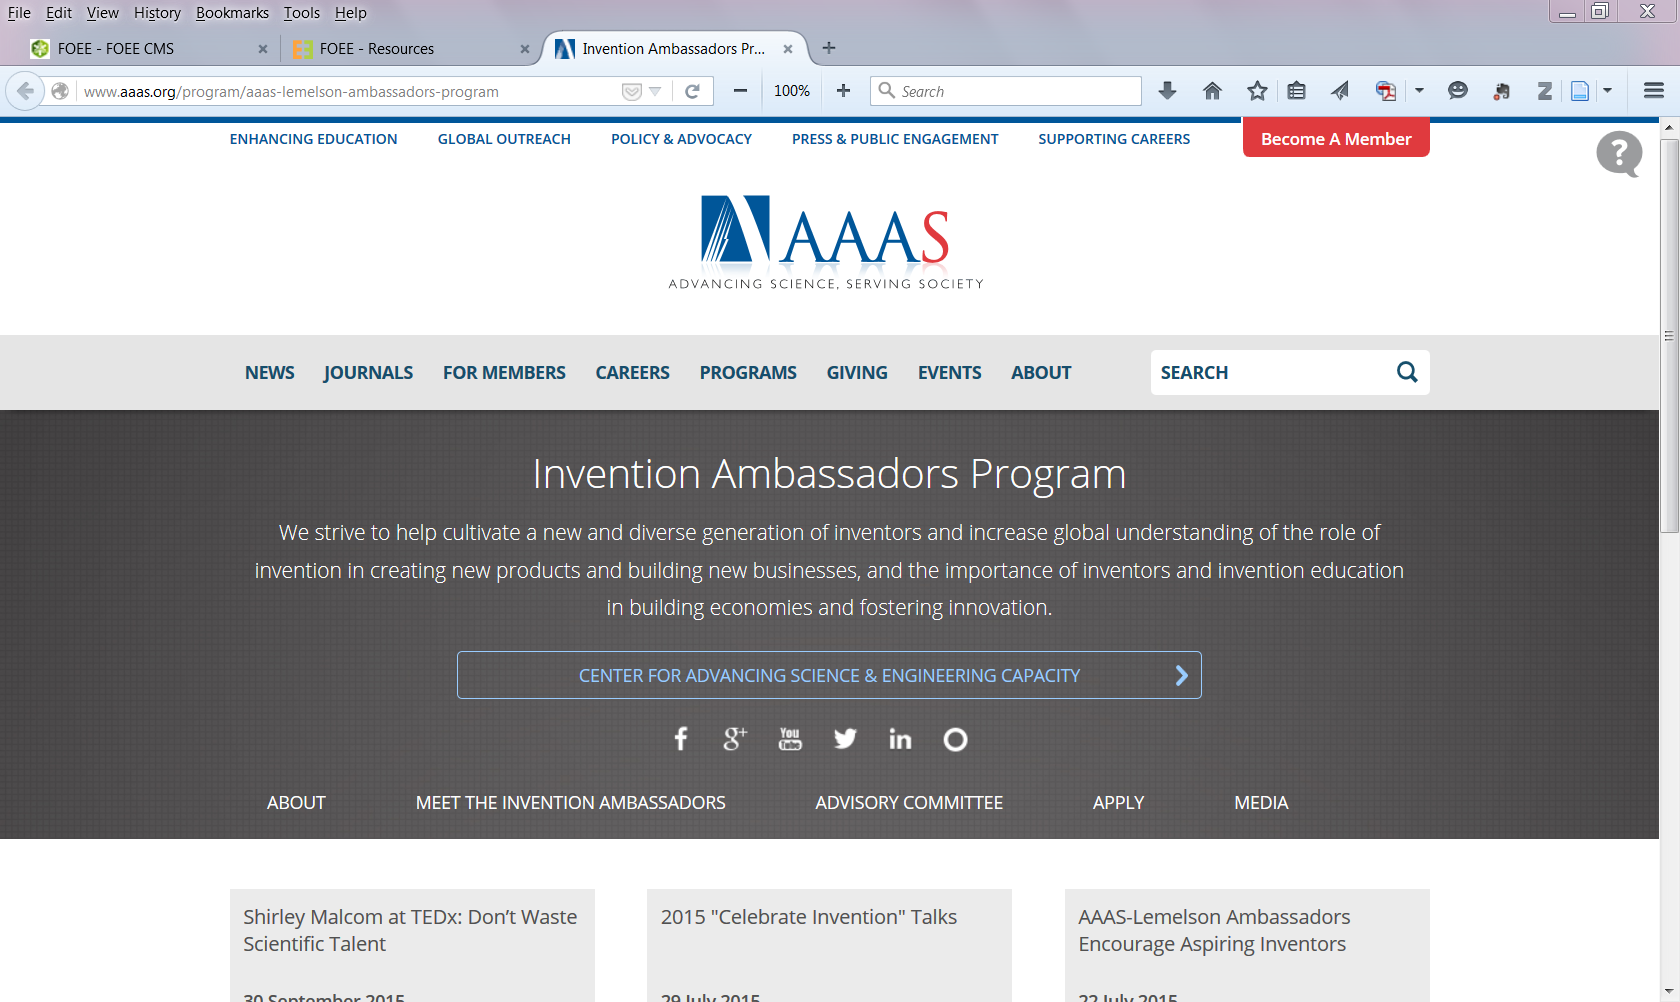 AAAS Invention Ambassadors Program